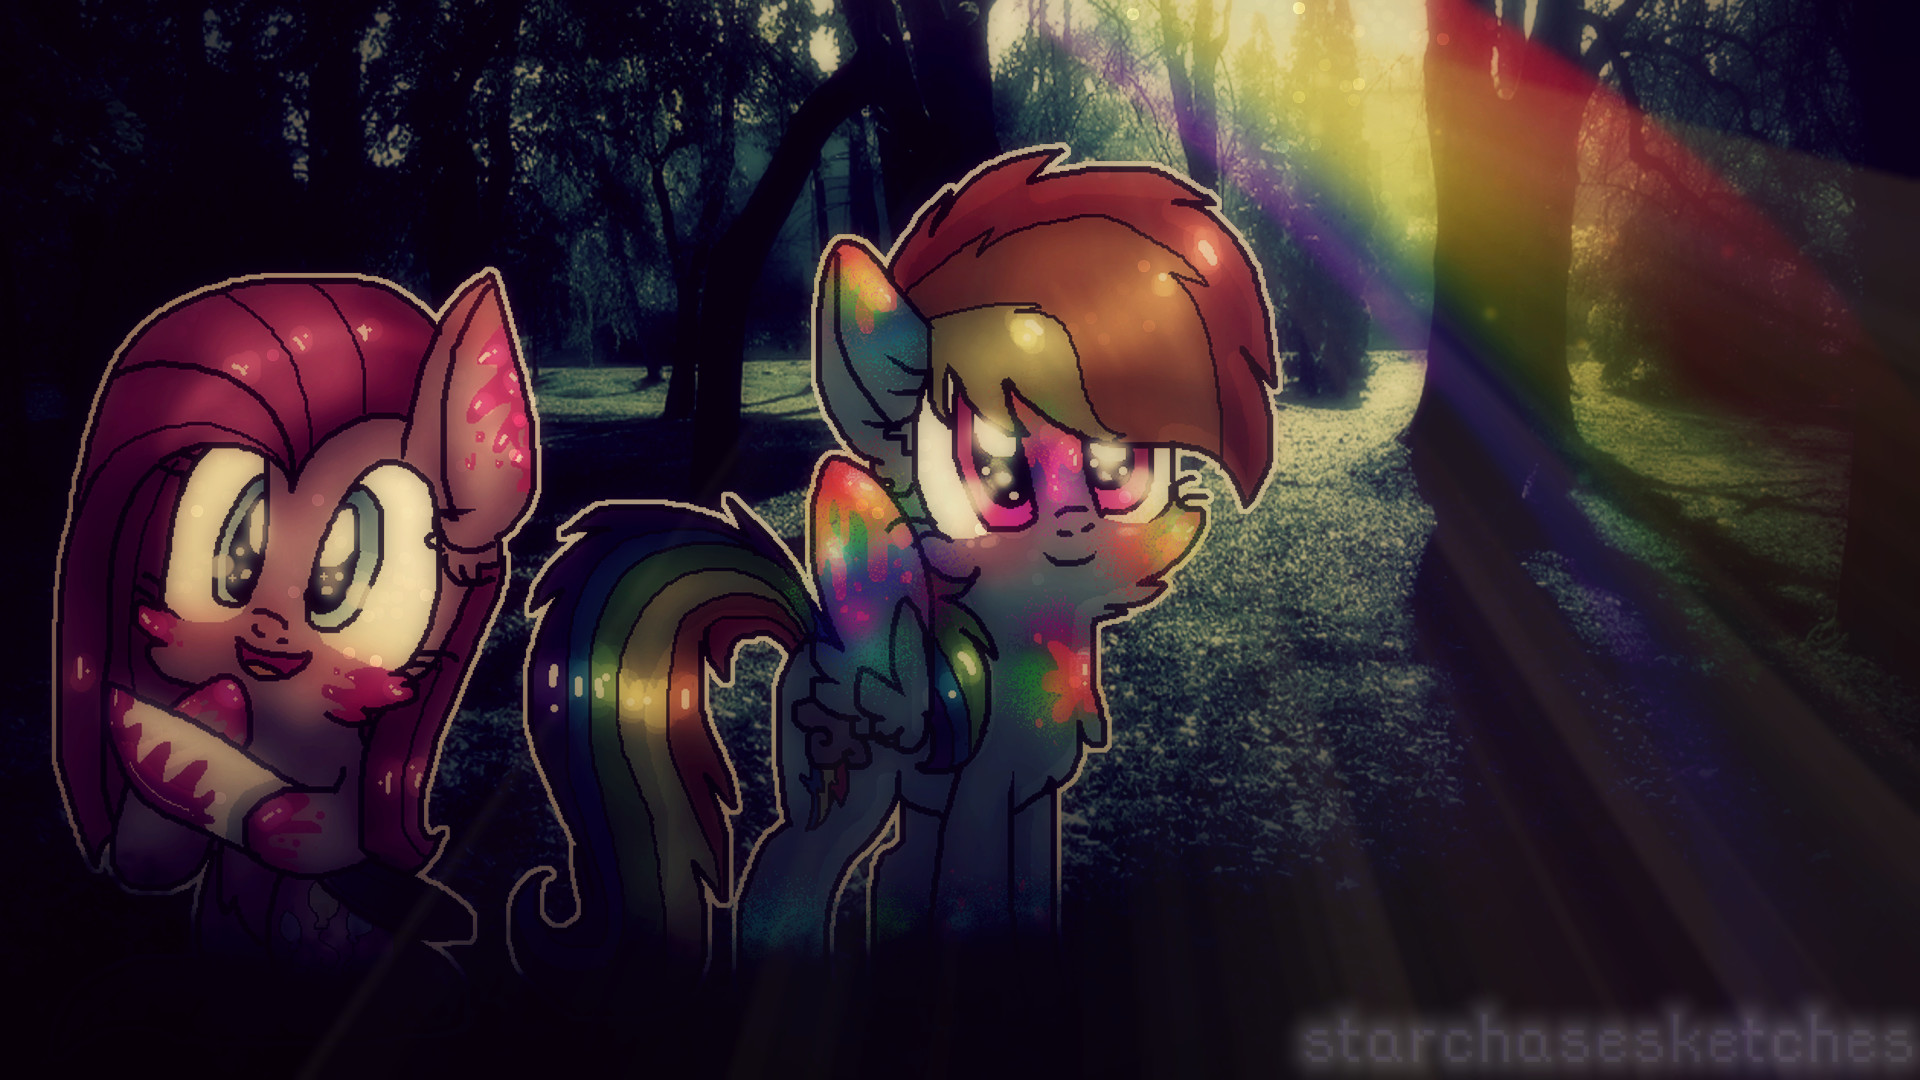 Creepy but cute ( Wallpaper ) : . by StarChaseSketches on .